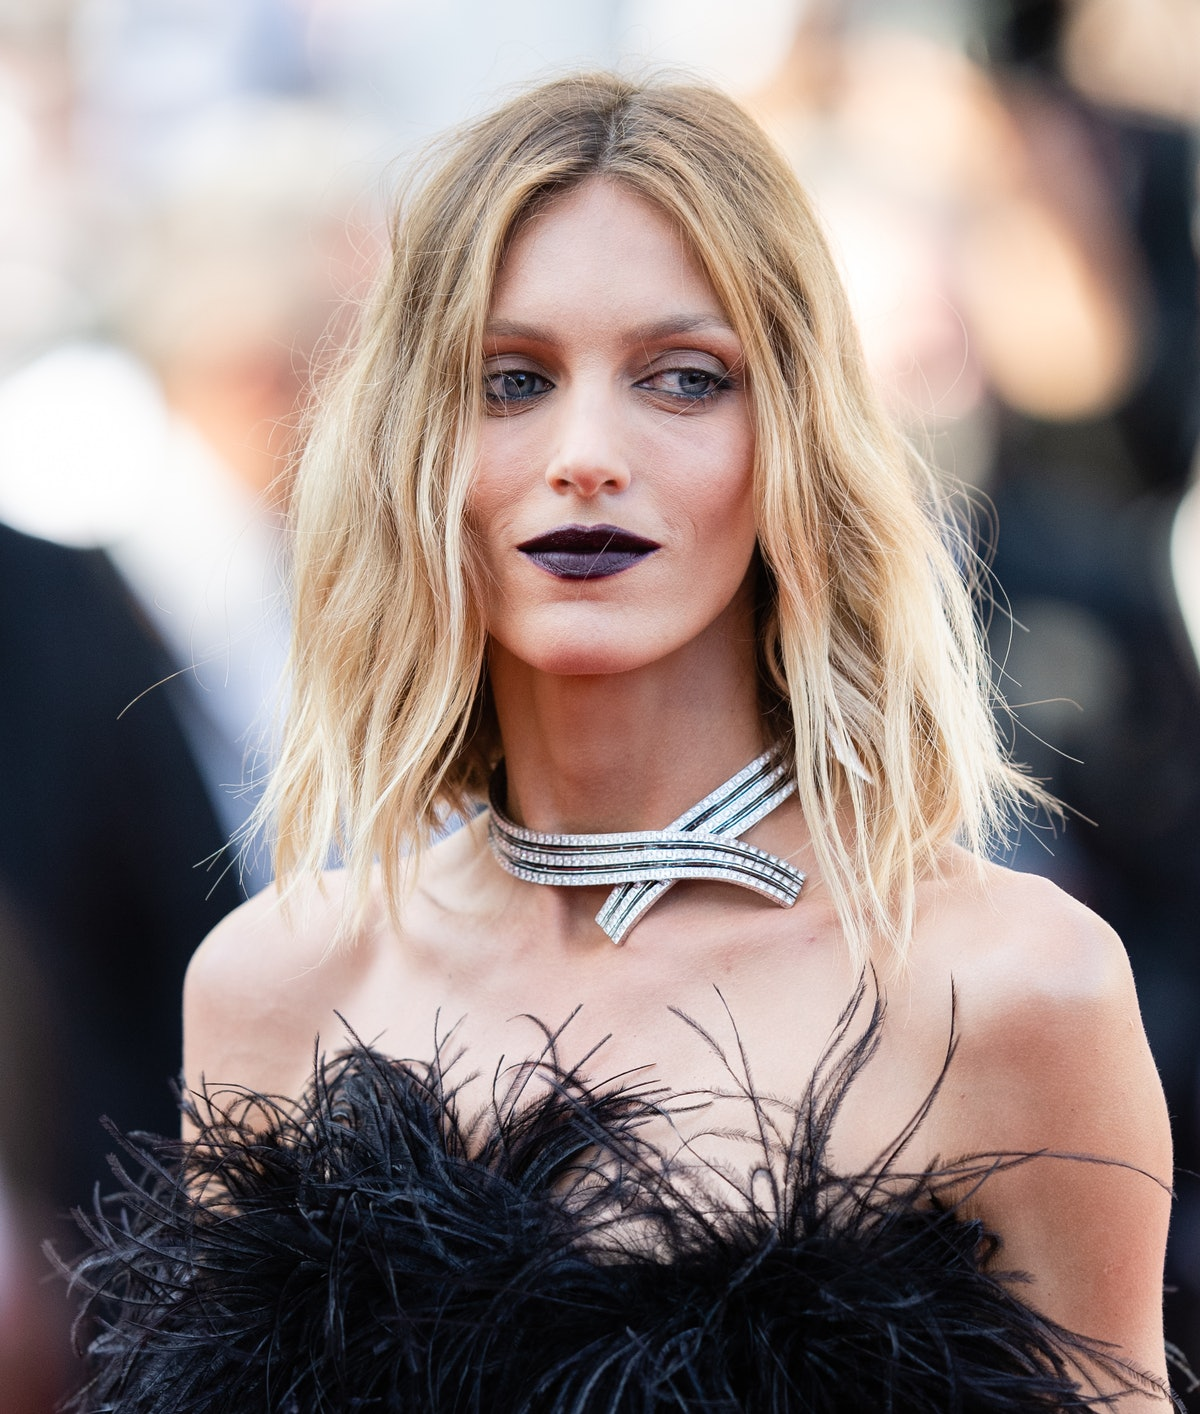 """CANNES, FRANCE - JULY 10: Anja Rubik attends the """"De Son Vivient (Peaceful)"""" screening during the 74th annual Cannes Film Festival on July 10, 2021 in Cannes, France. (Photo by Samir Hussein/WireImage)"""